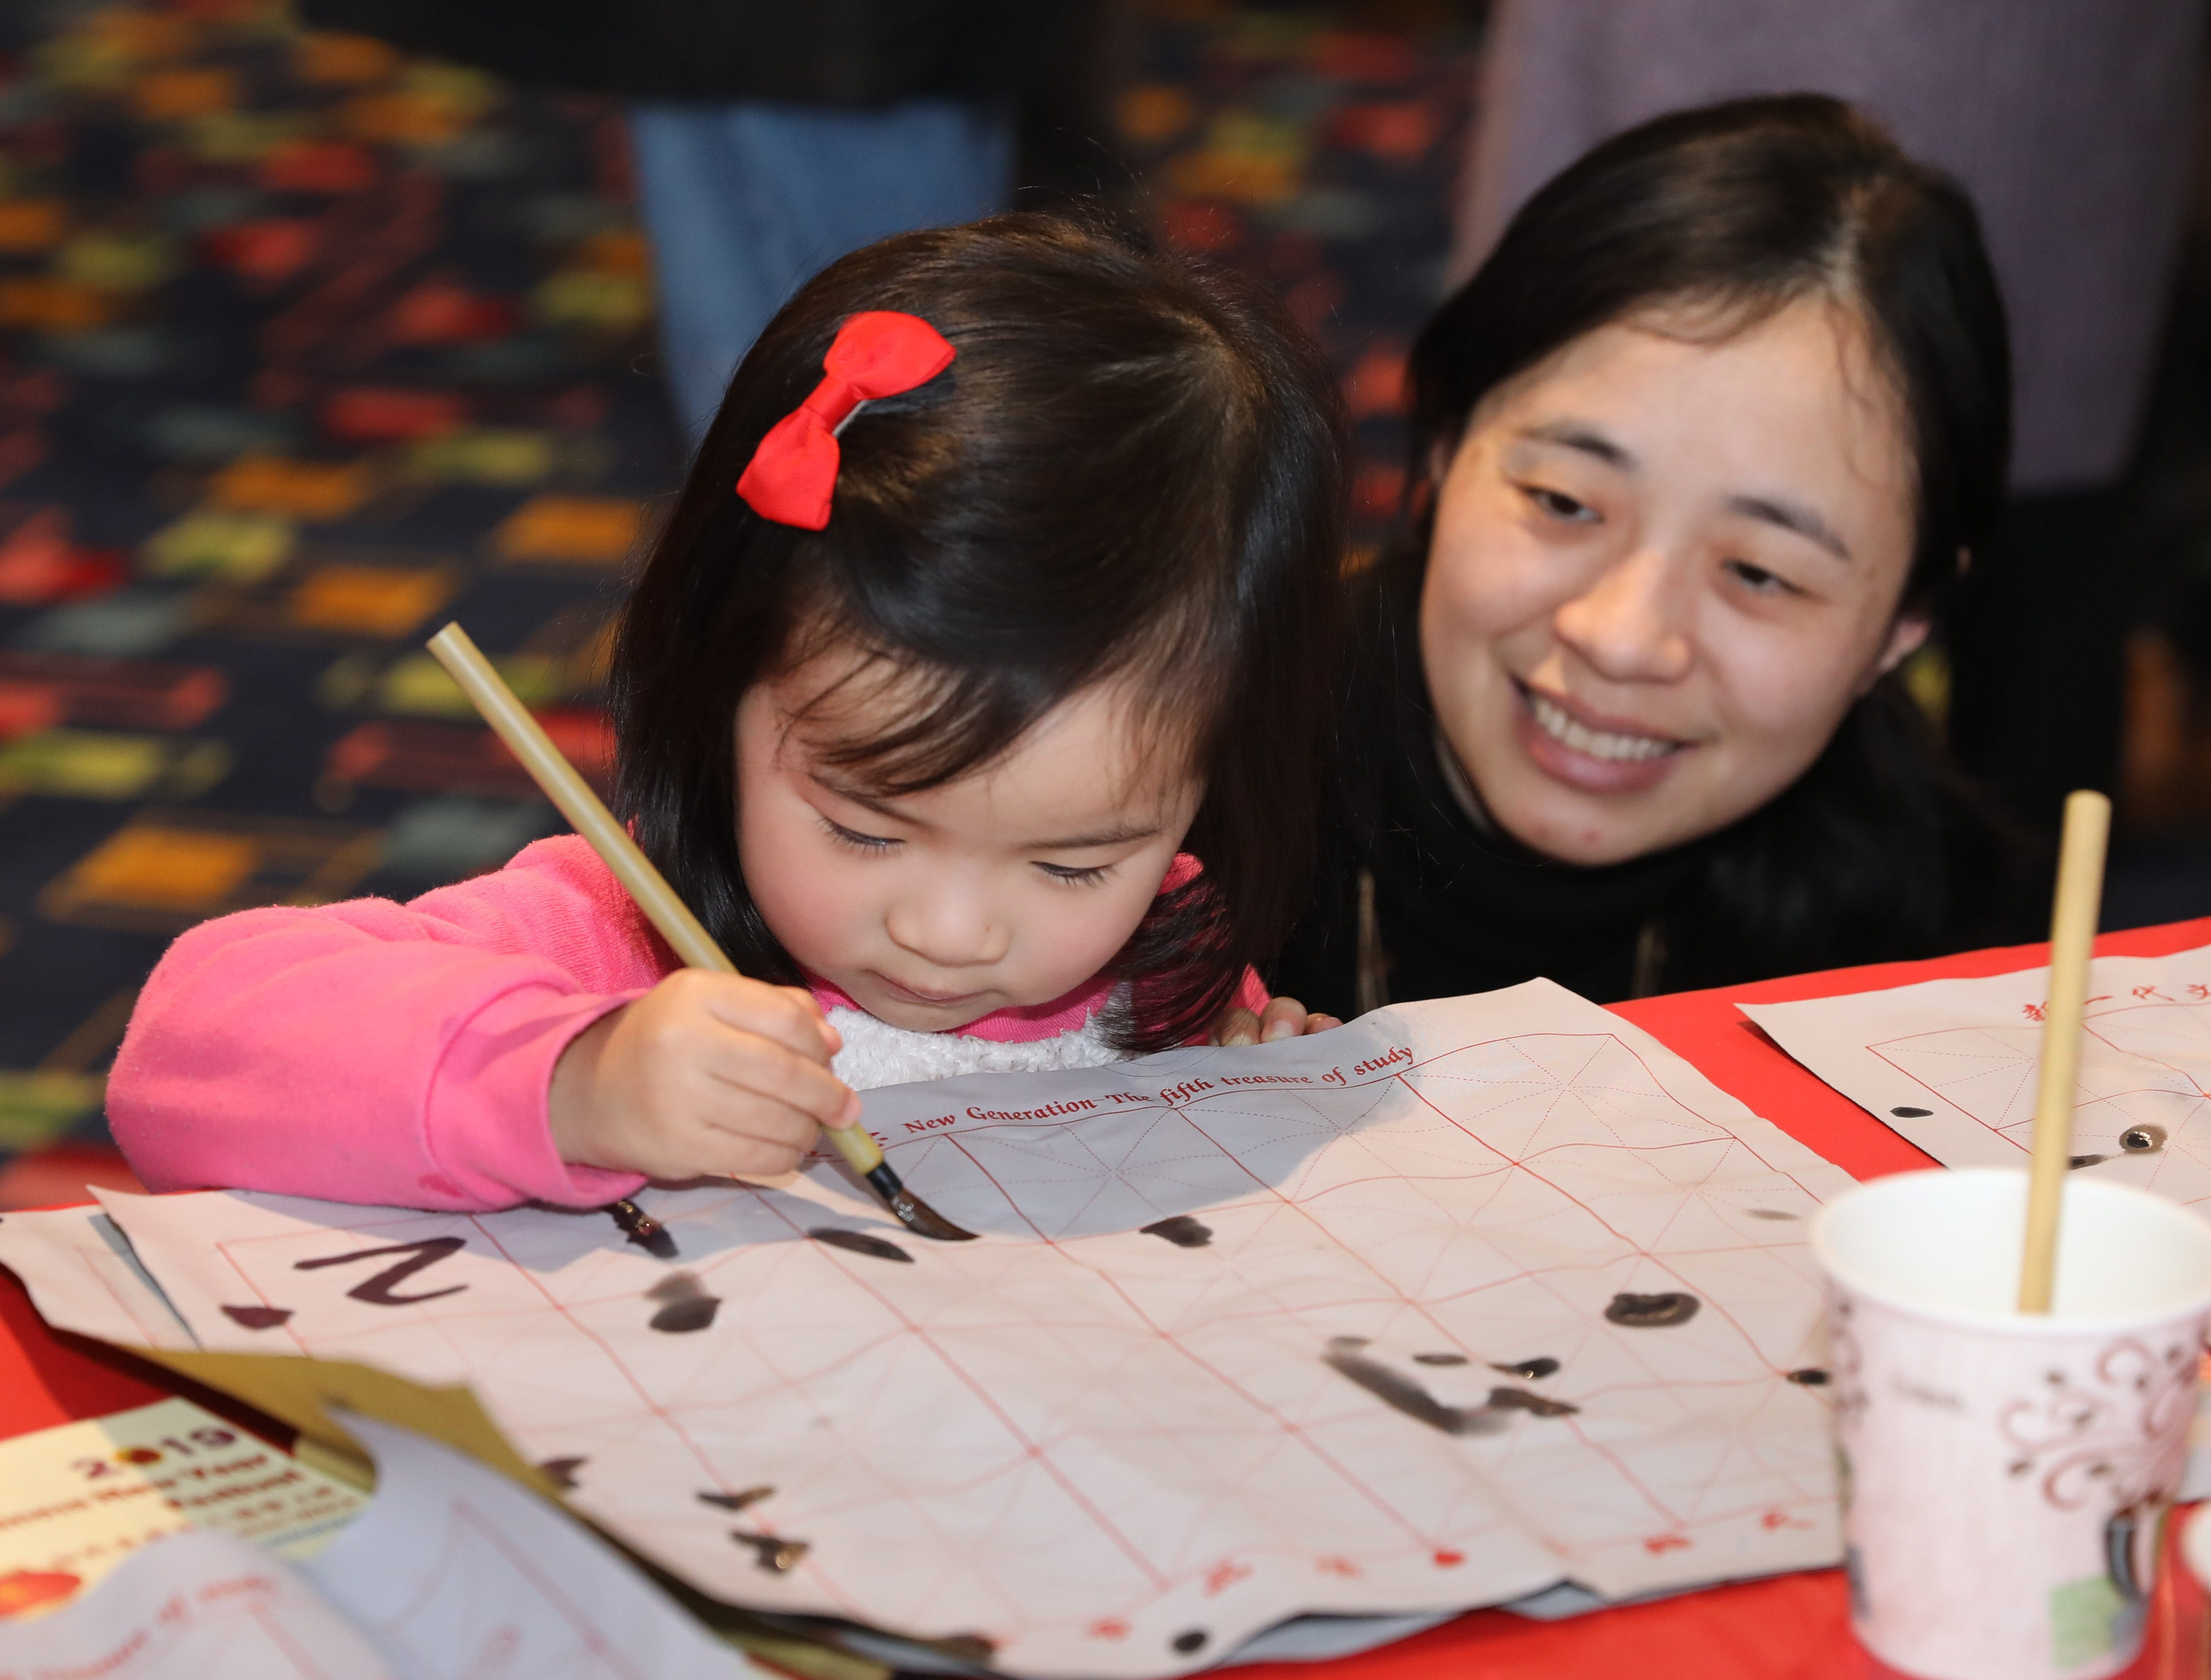 Jie Gao looks on as her daughter Kate Xin, 2, writes some numbers on a grid, during the 30th Chinese New Year Festival, the Year of the Pig, sponsored by WACA (Westchester Association of Chinese Americans), at The Performing Arts Center at Purchase College SUNY, Feb. 9, 2019.